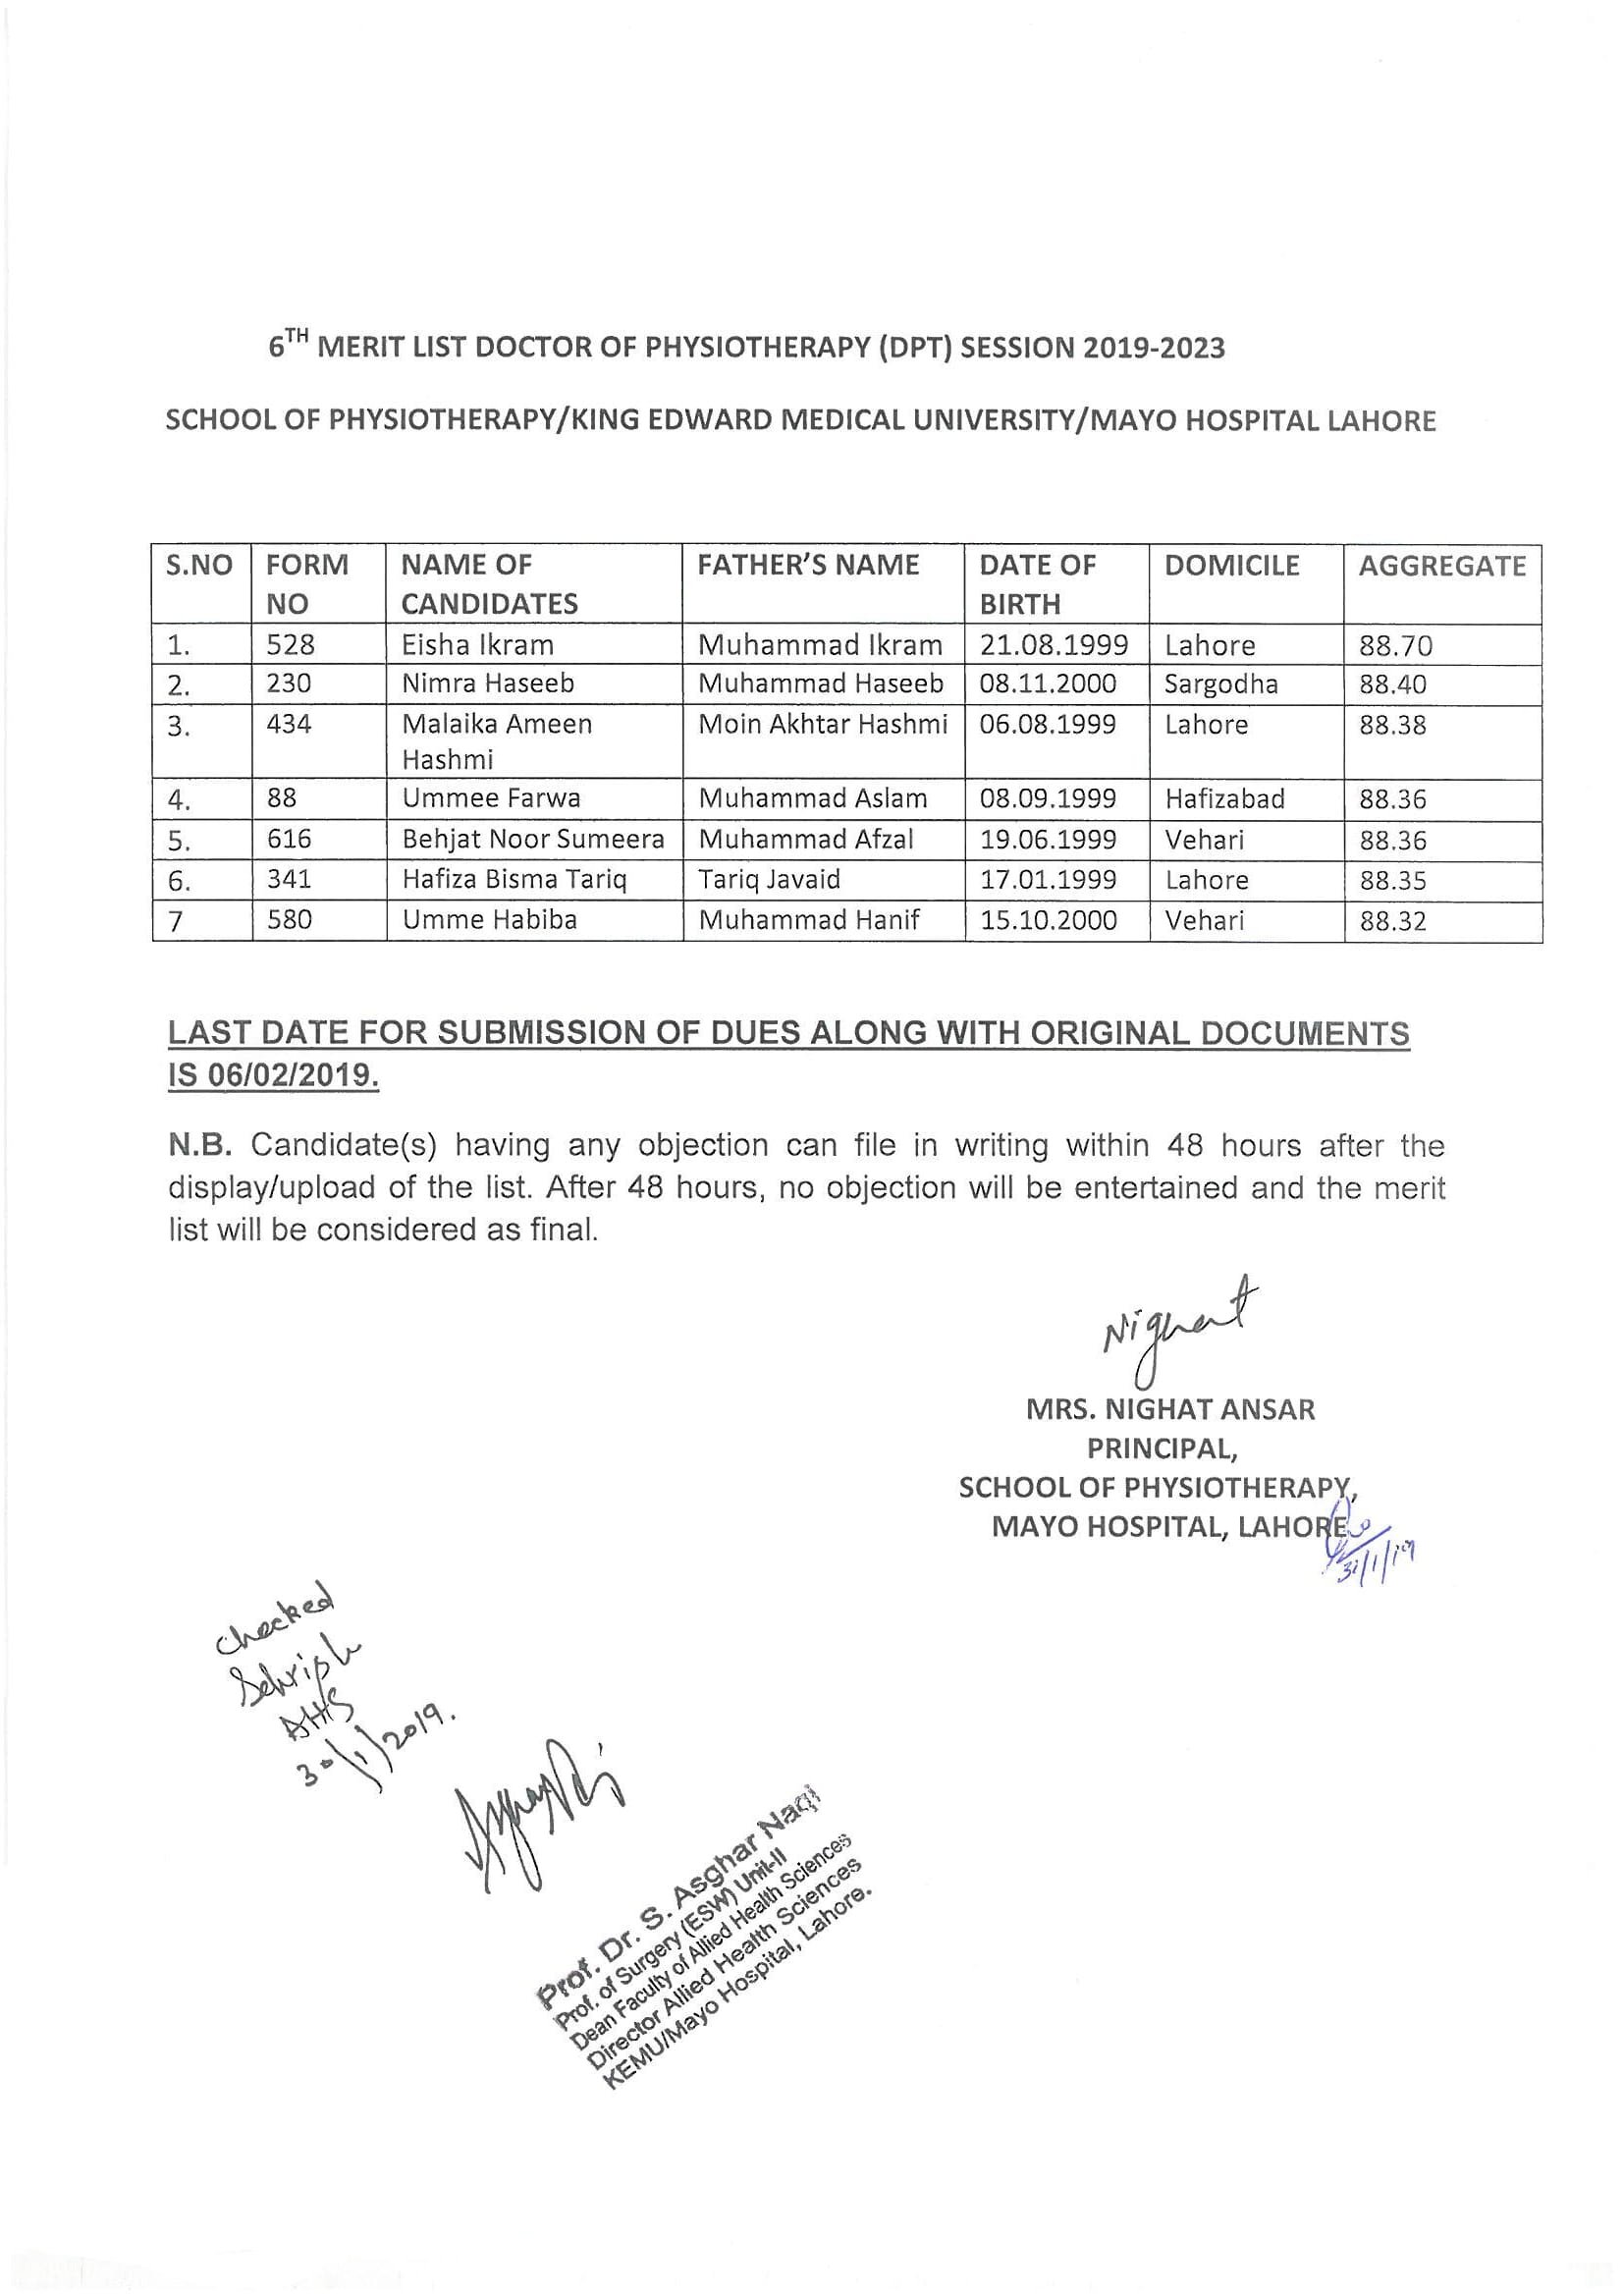 6th Merit List DPT at King Eward Medical University, Lahore 2019